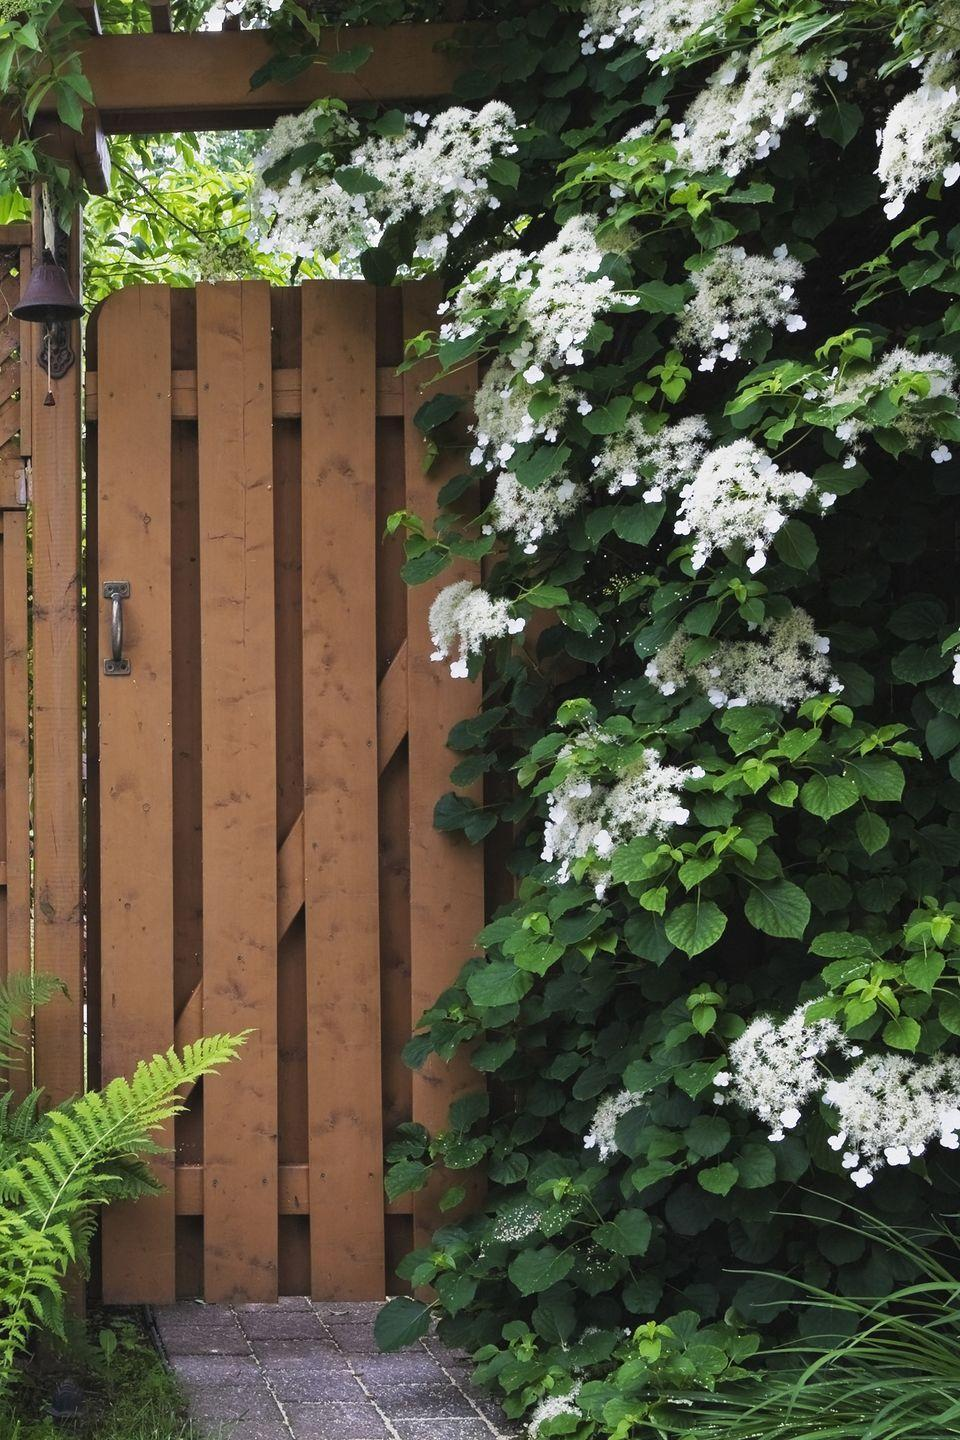 """<p>This shade-lover boasts creamy white flowers all summer long. Its vines are very heavy, so it needs something sturdy to climb or lean against. It's super-slow-growing, so be patient as it can take years to establish.</p><p><a class=""""link rapid-noclick-resp"""" href=""""https://go.redirectingat.com?id=74968X1596630&url=https%3A%2F%2Fwww.naturehills.com%2Fclimbing-hydrangea&sref=https%3A%2F%2Fwww.countryliving.com%2Fgardening%2Fgarden-ideas%2Fadvice%2Fg1456%2Ffast-growing-vines%2F"""" rel=""""nofollow noopener"""" target=""""_blank"""" data-ylk=""""slk:SHOP CLIMBING HYDRANGEAS"""">SHOP CLIMBING HYDRANGEAS</a></p>"""